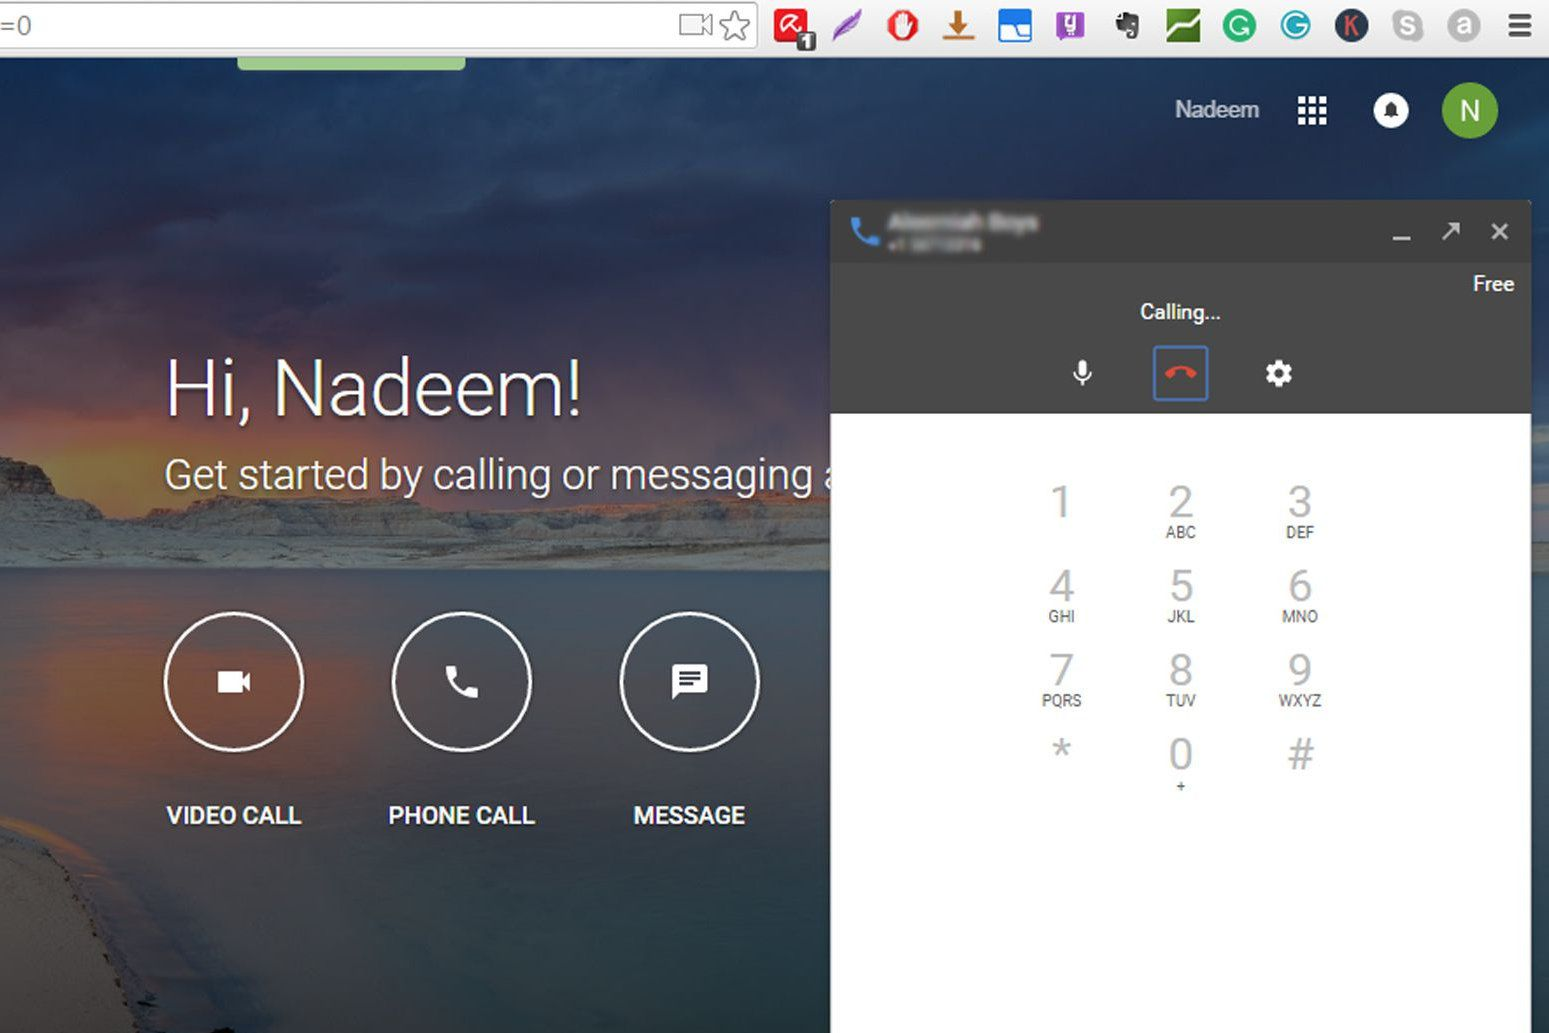 Hangouts calling through Gmail and Google.